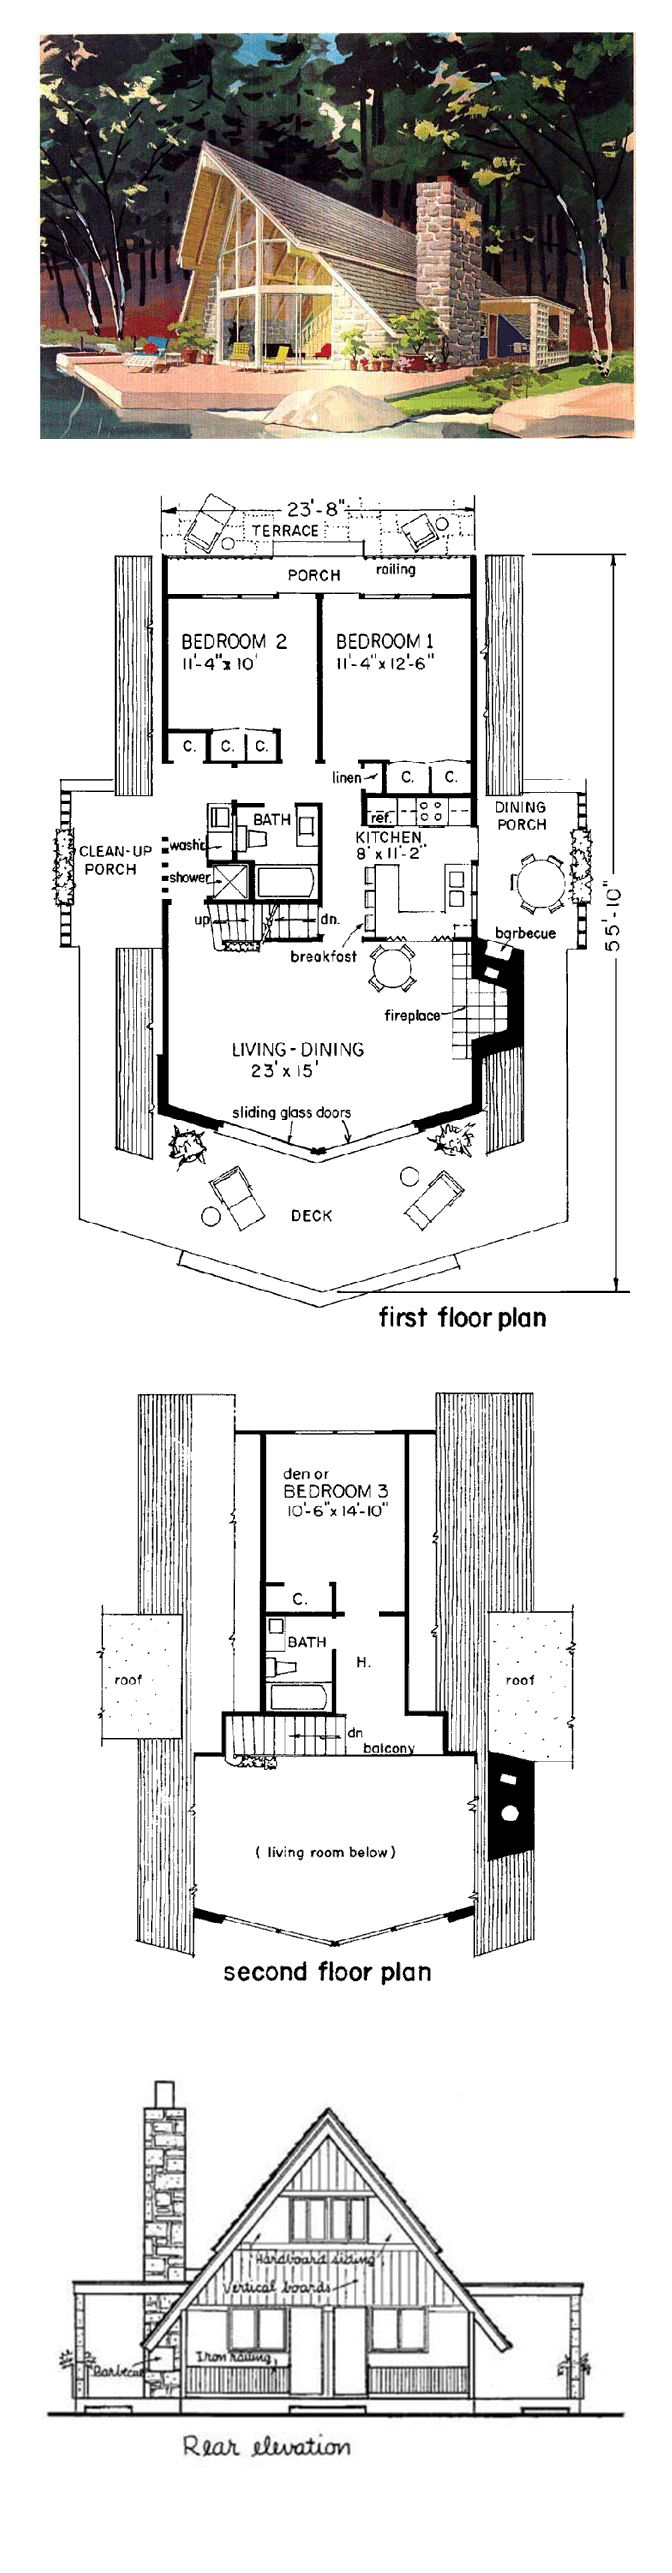 A frame cabin contemporary house plan 43048 for A frame cottage floor plans